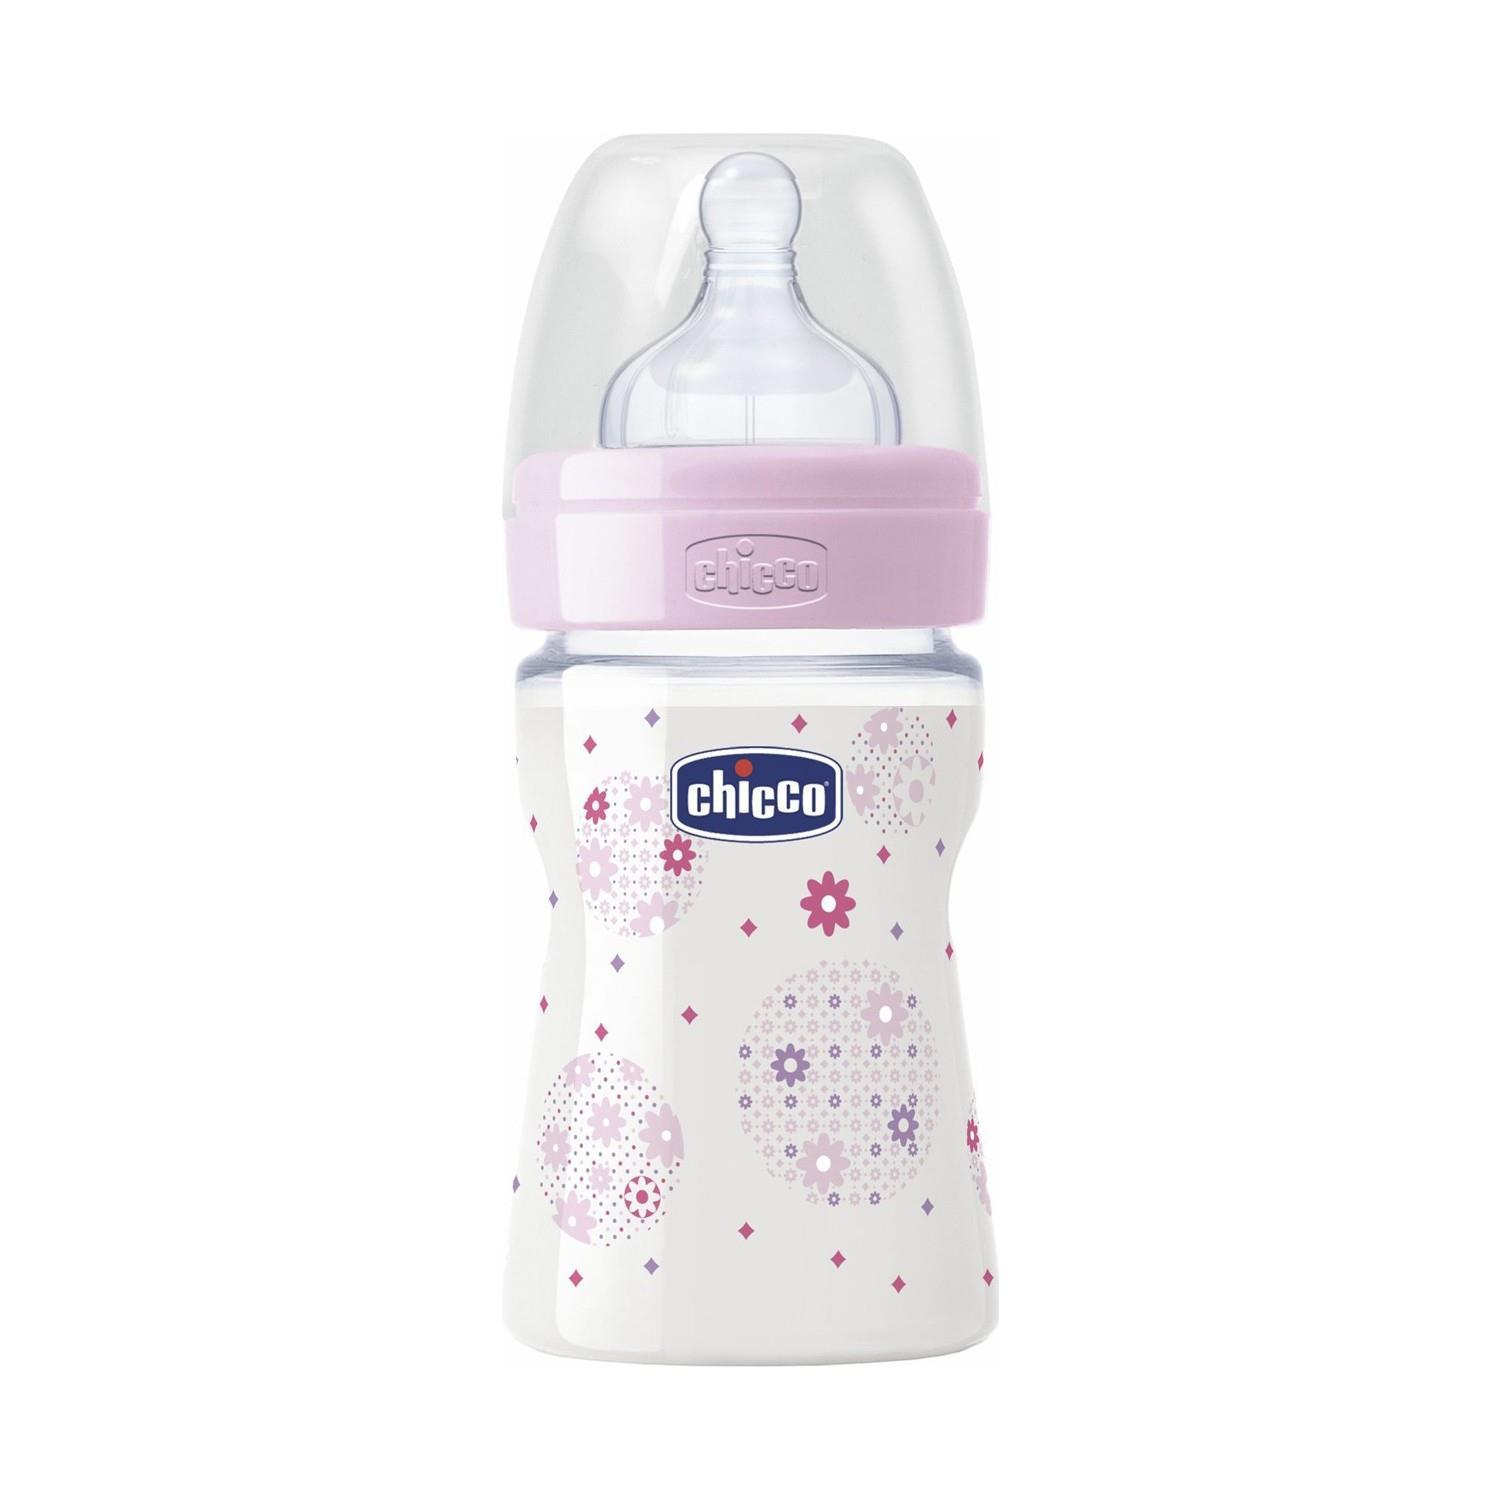 Chicco Wellbeing Pp Biberon Silikon 150 Ml Kiz Normal Akis 52930 - Chicco Wellbeing Pp Biberon Silikon 150 Ml Kız Normal Akış